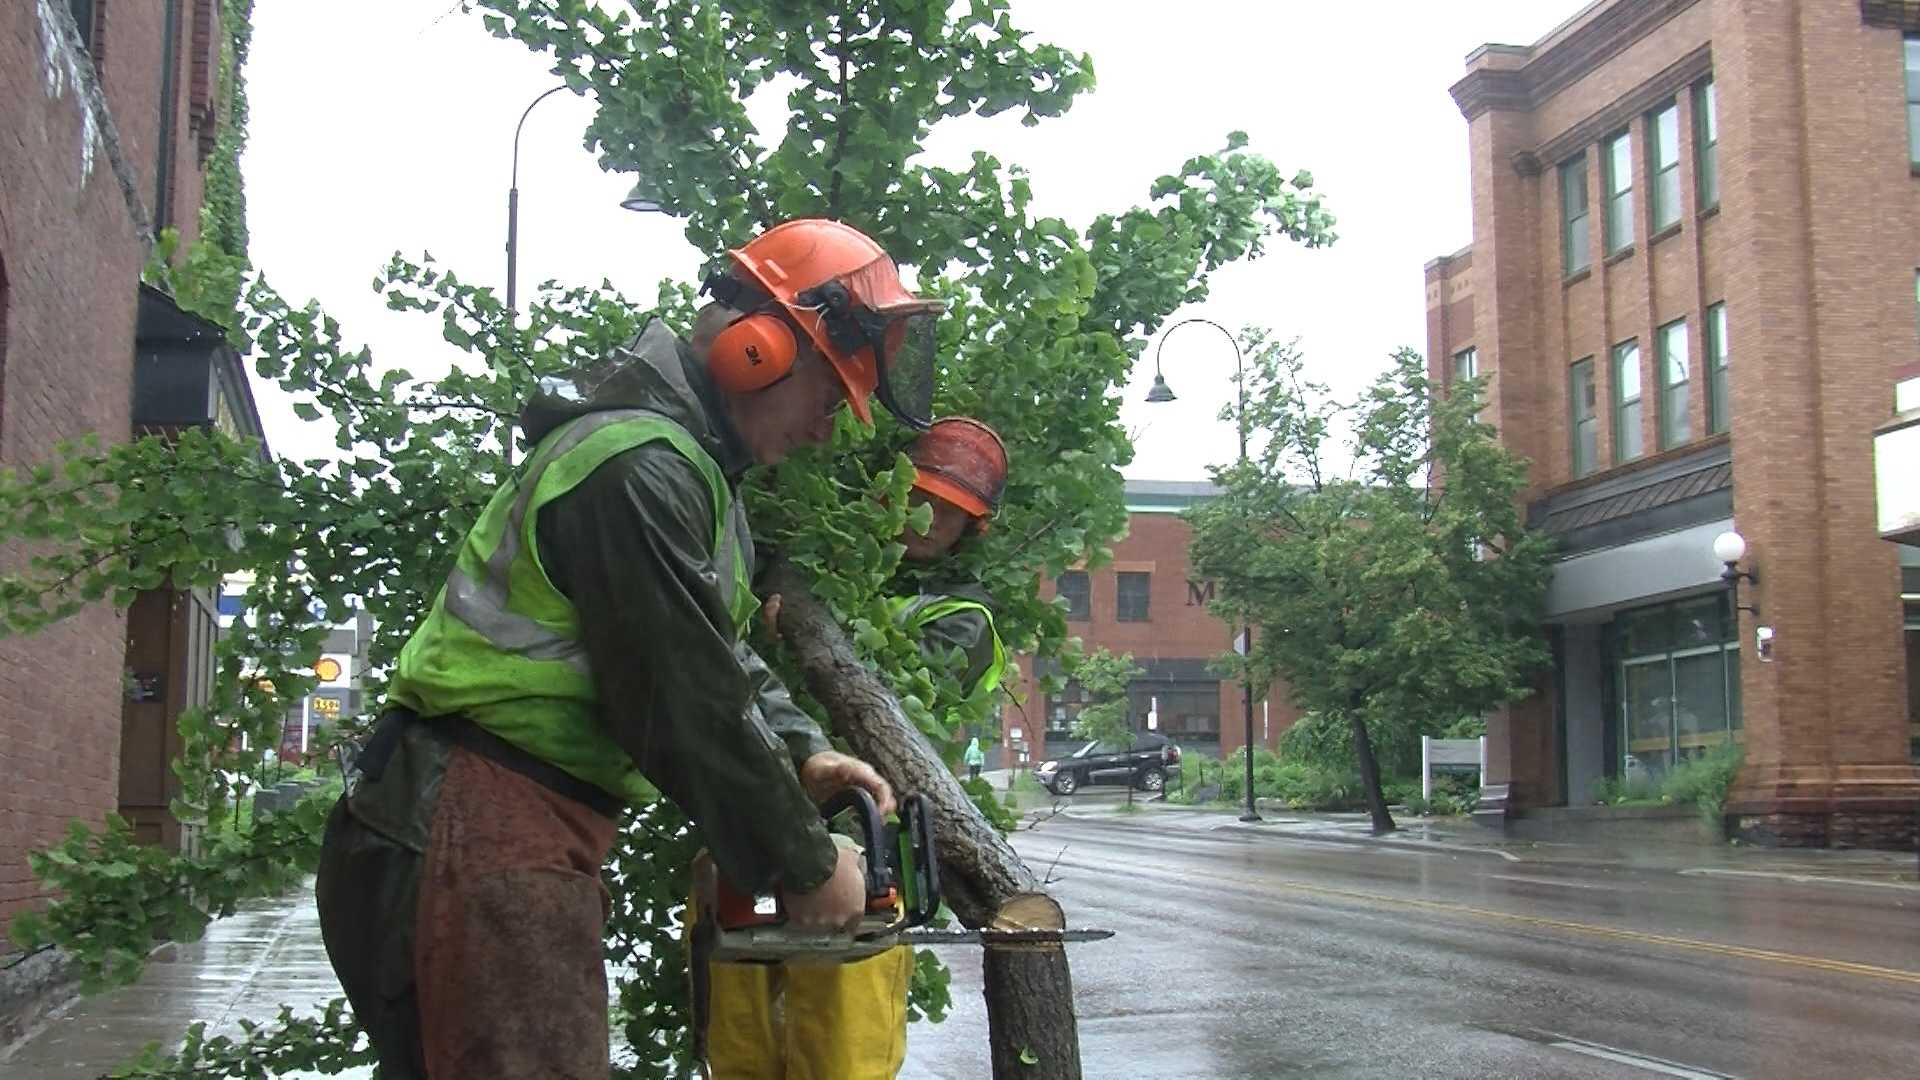 $6,000 could be needed to replace vandalized trees